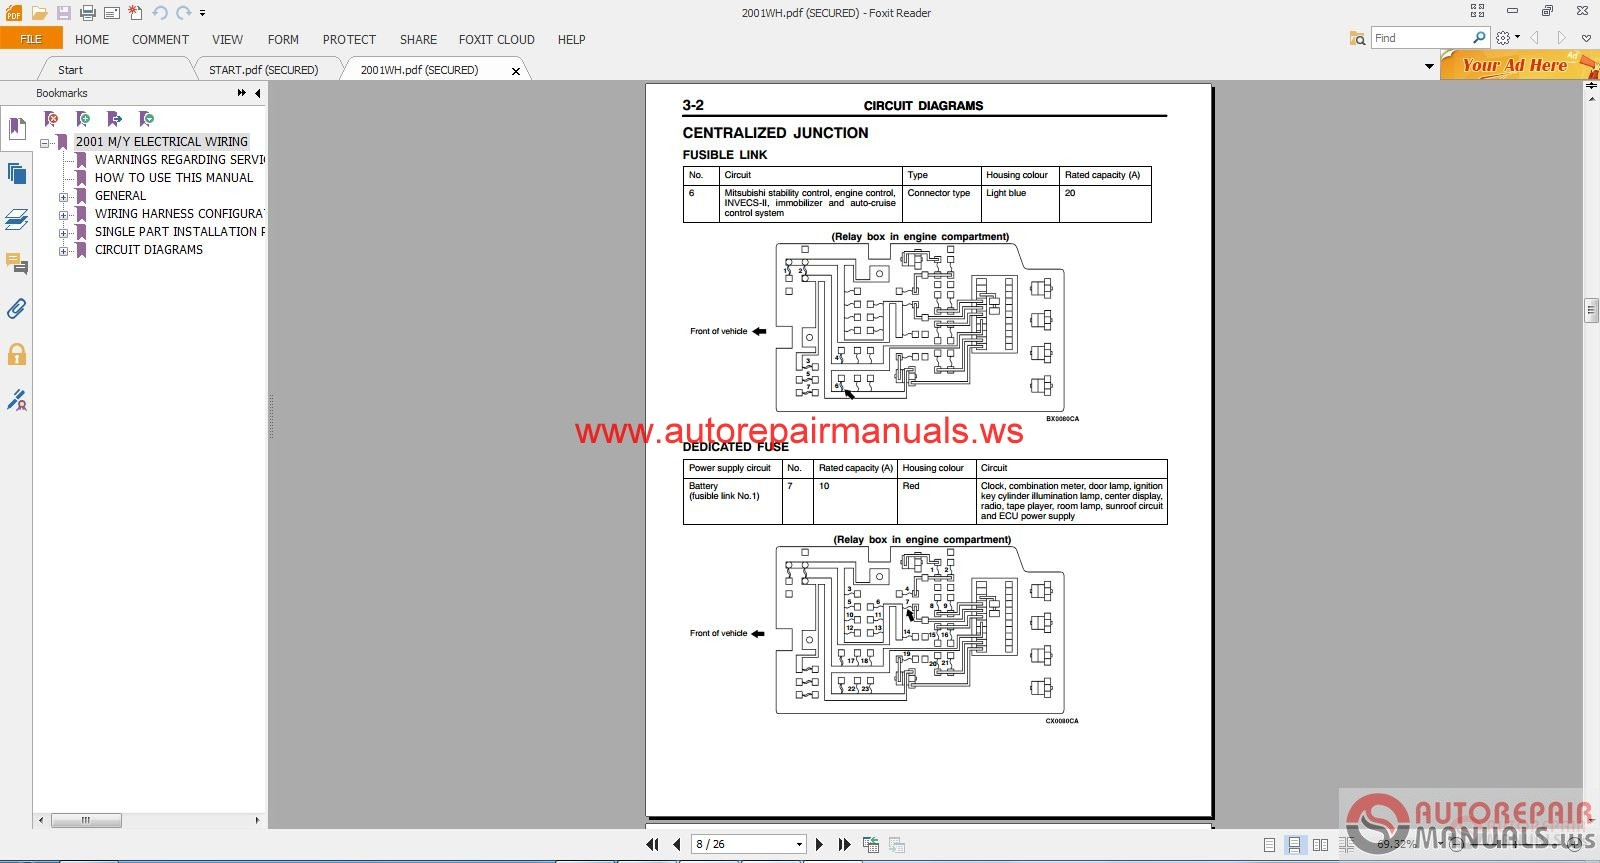 2002 mitsubishi lancer repair manual pdf